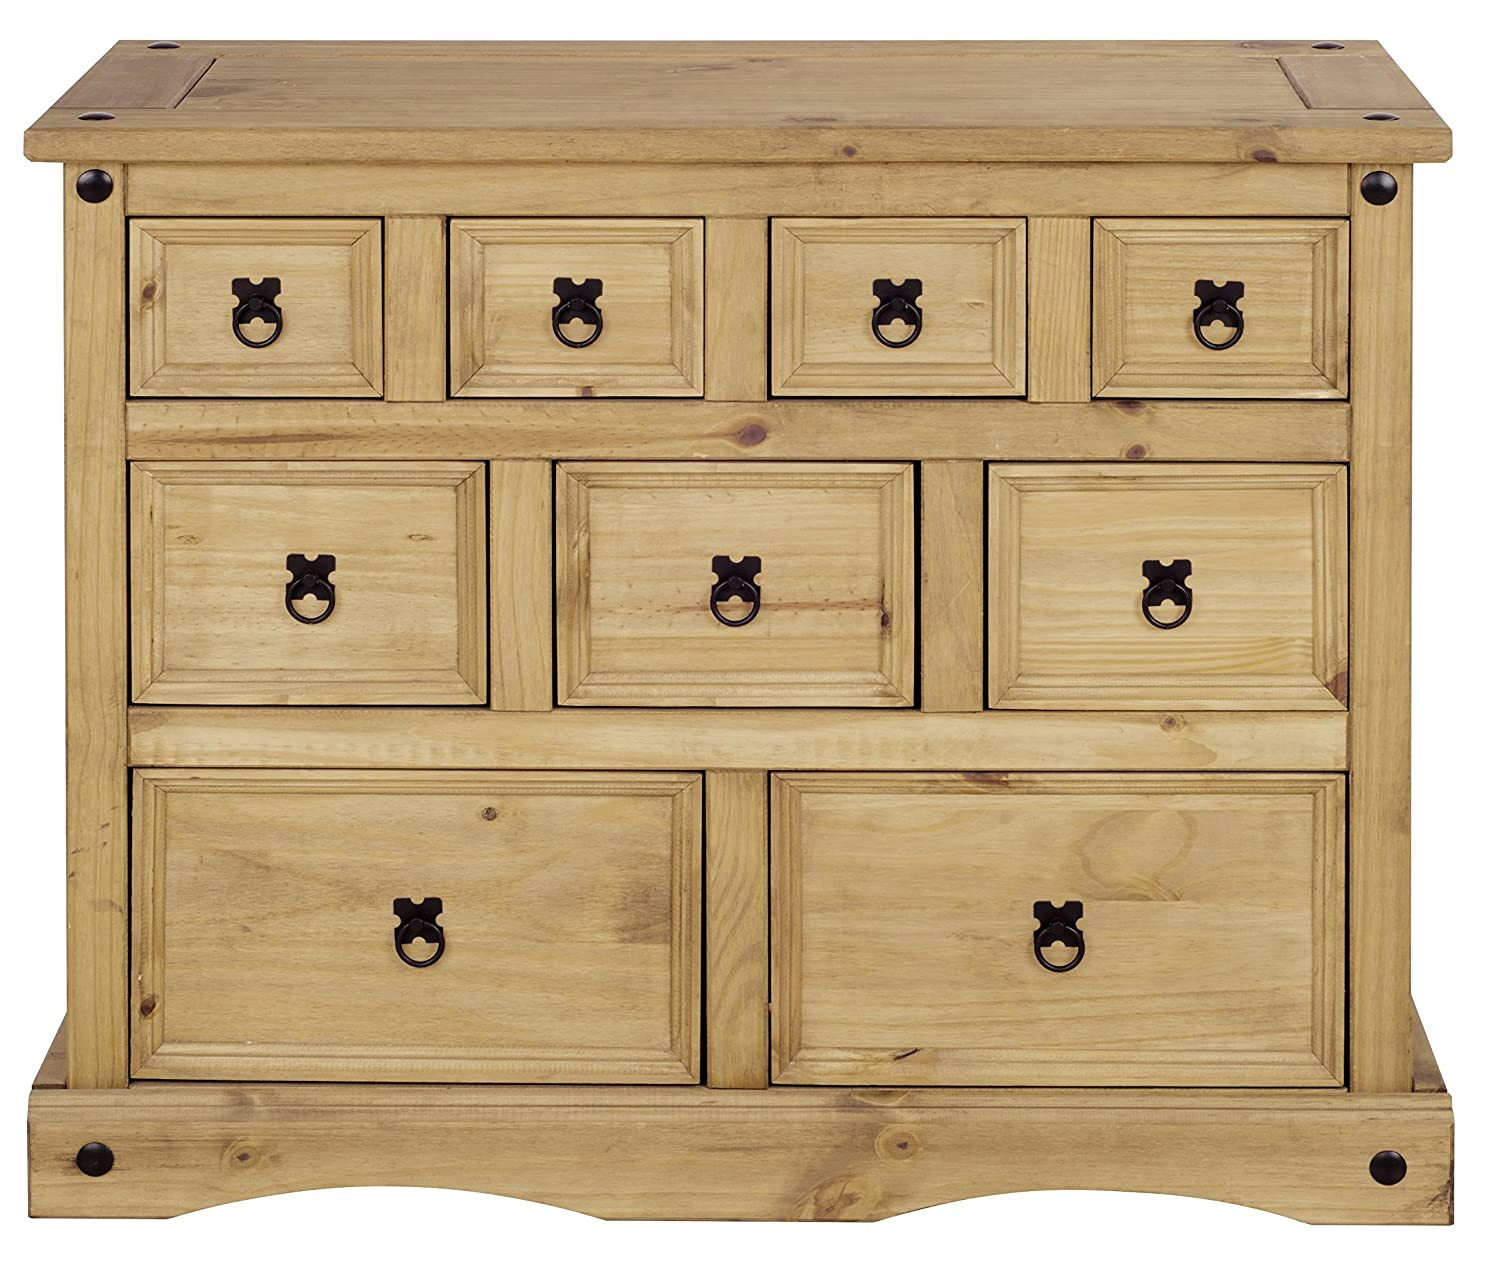 Mews Corona Merchant Chest of Drawers, Mexican Pine P2201-CR